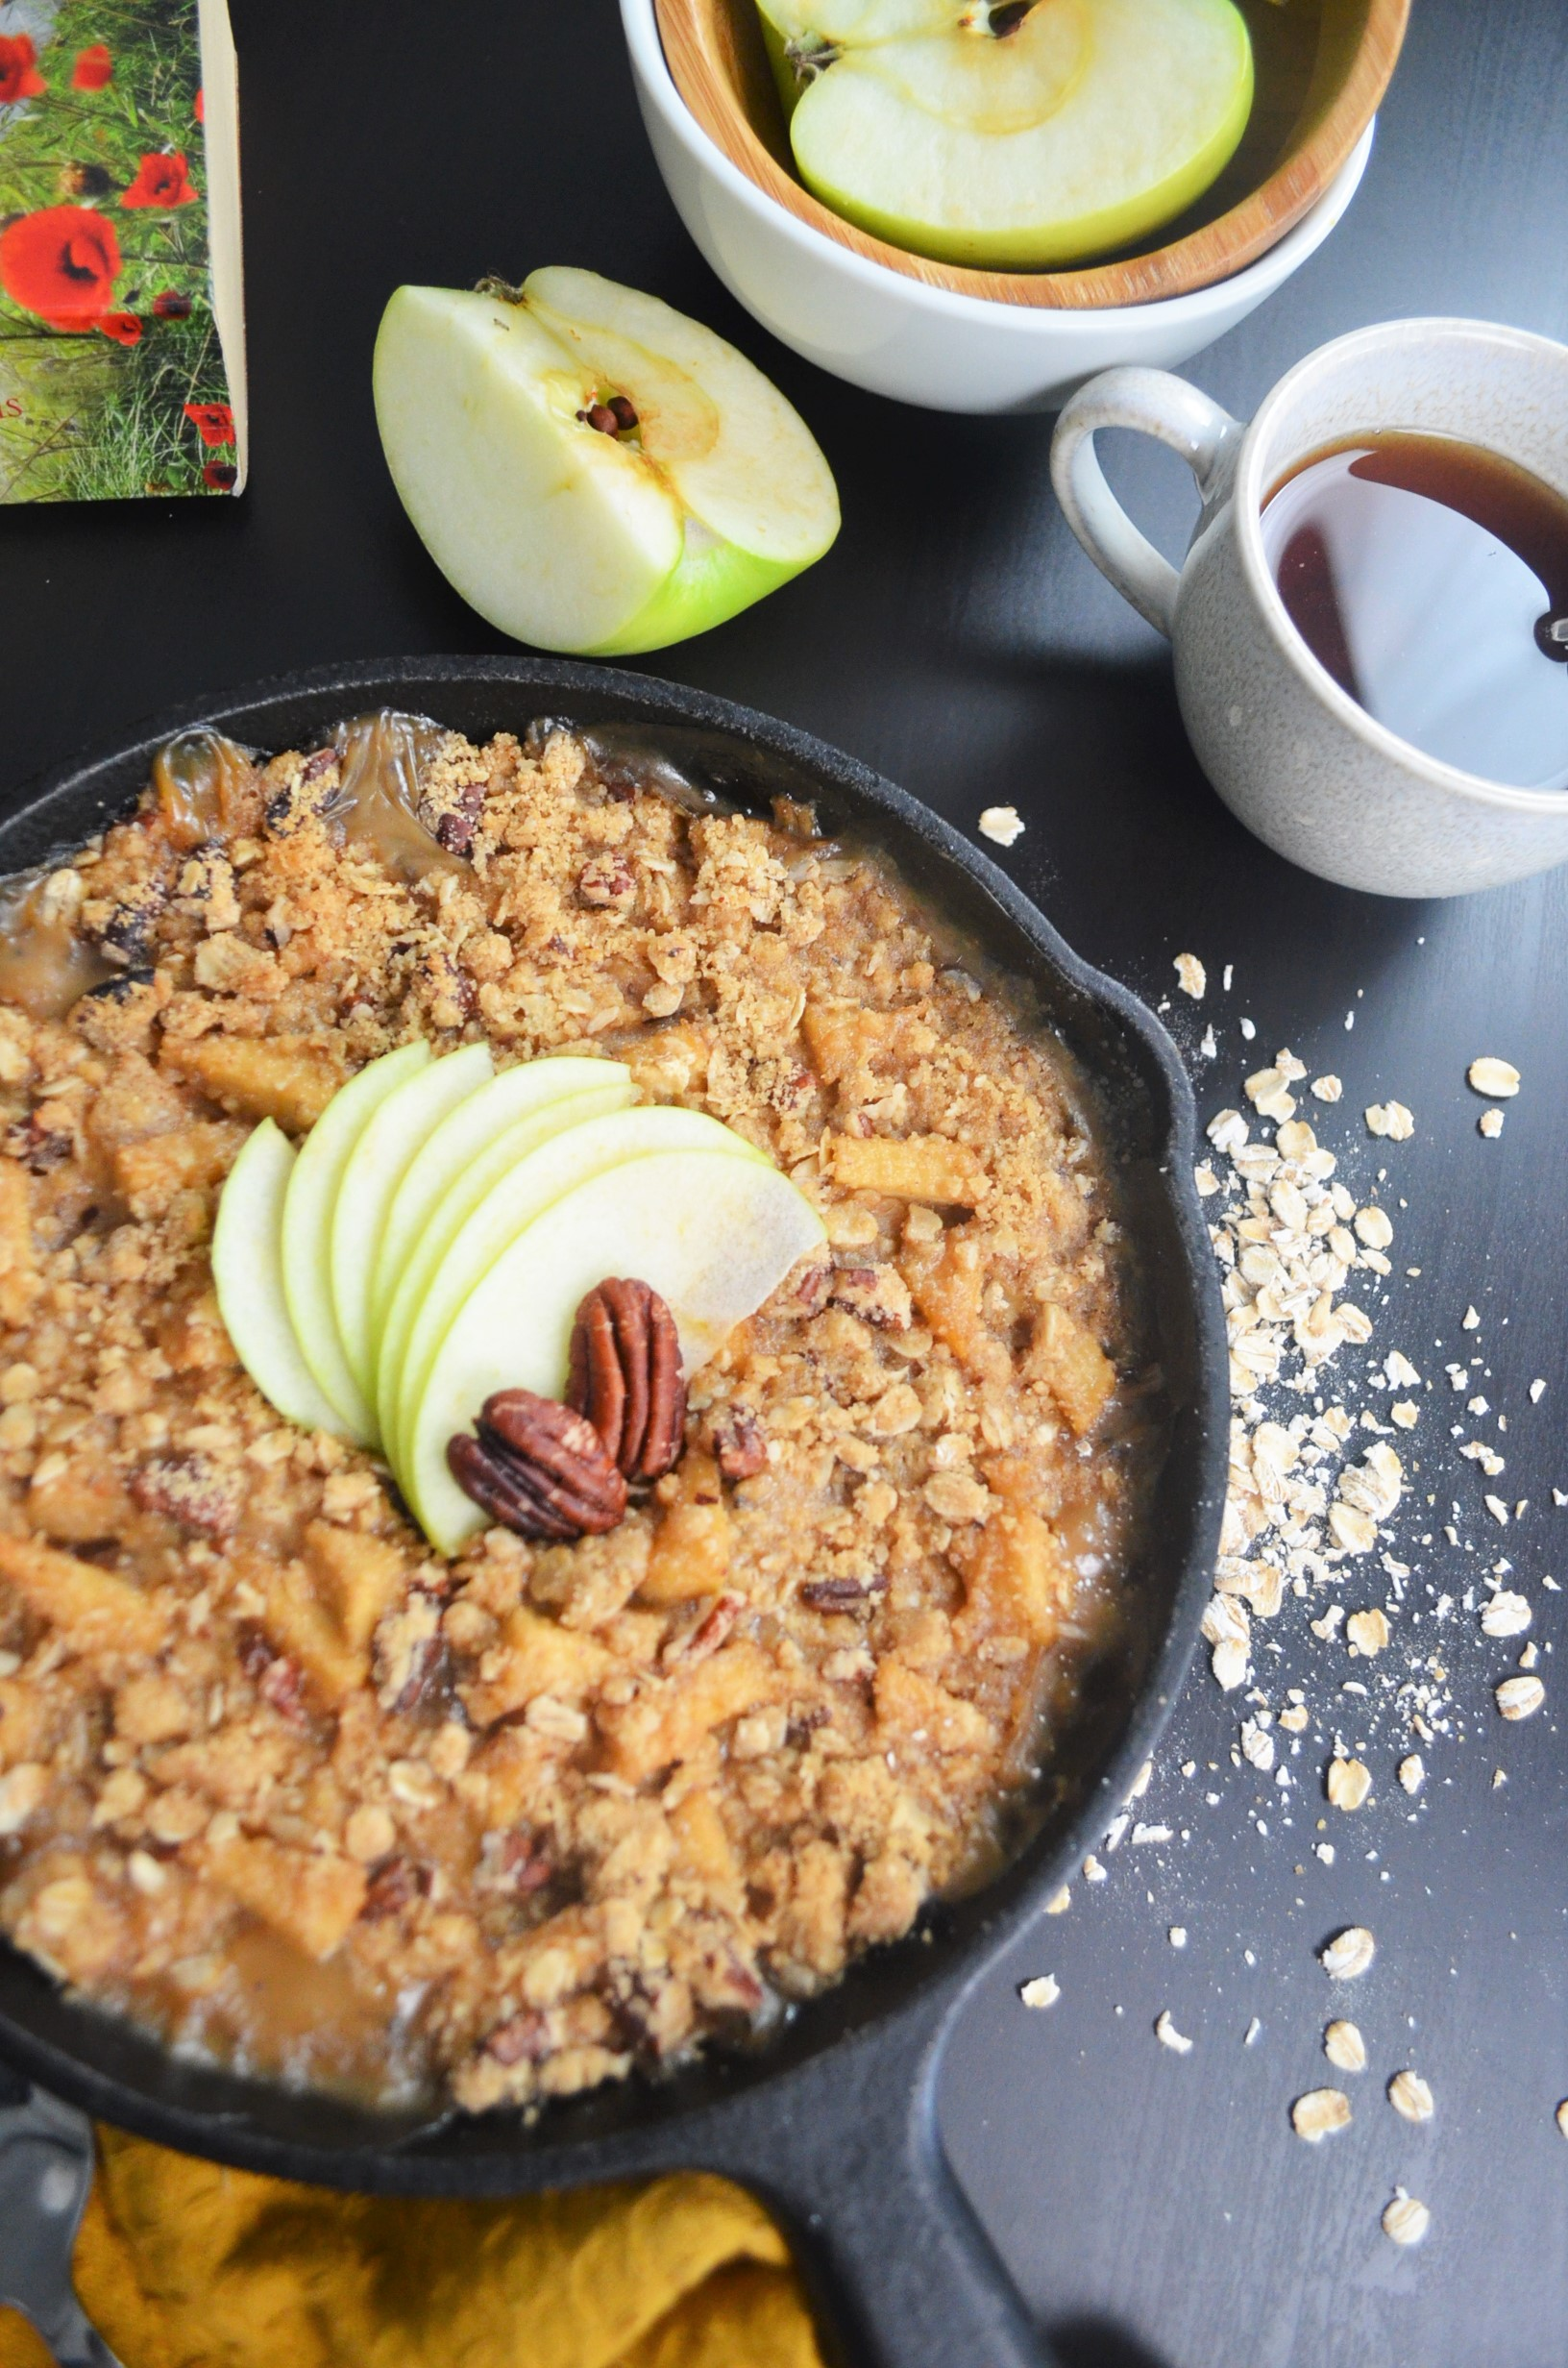 Baked Apple Oatmeal for Two